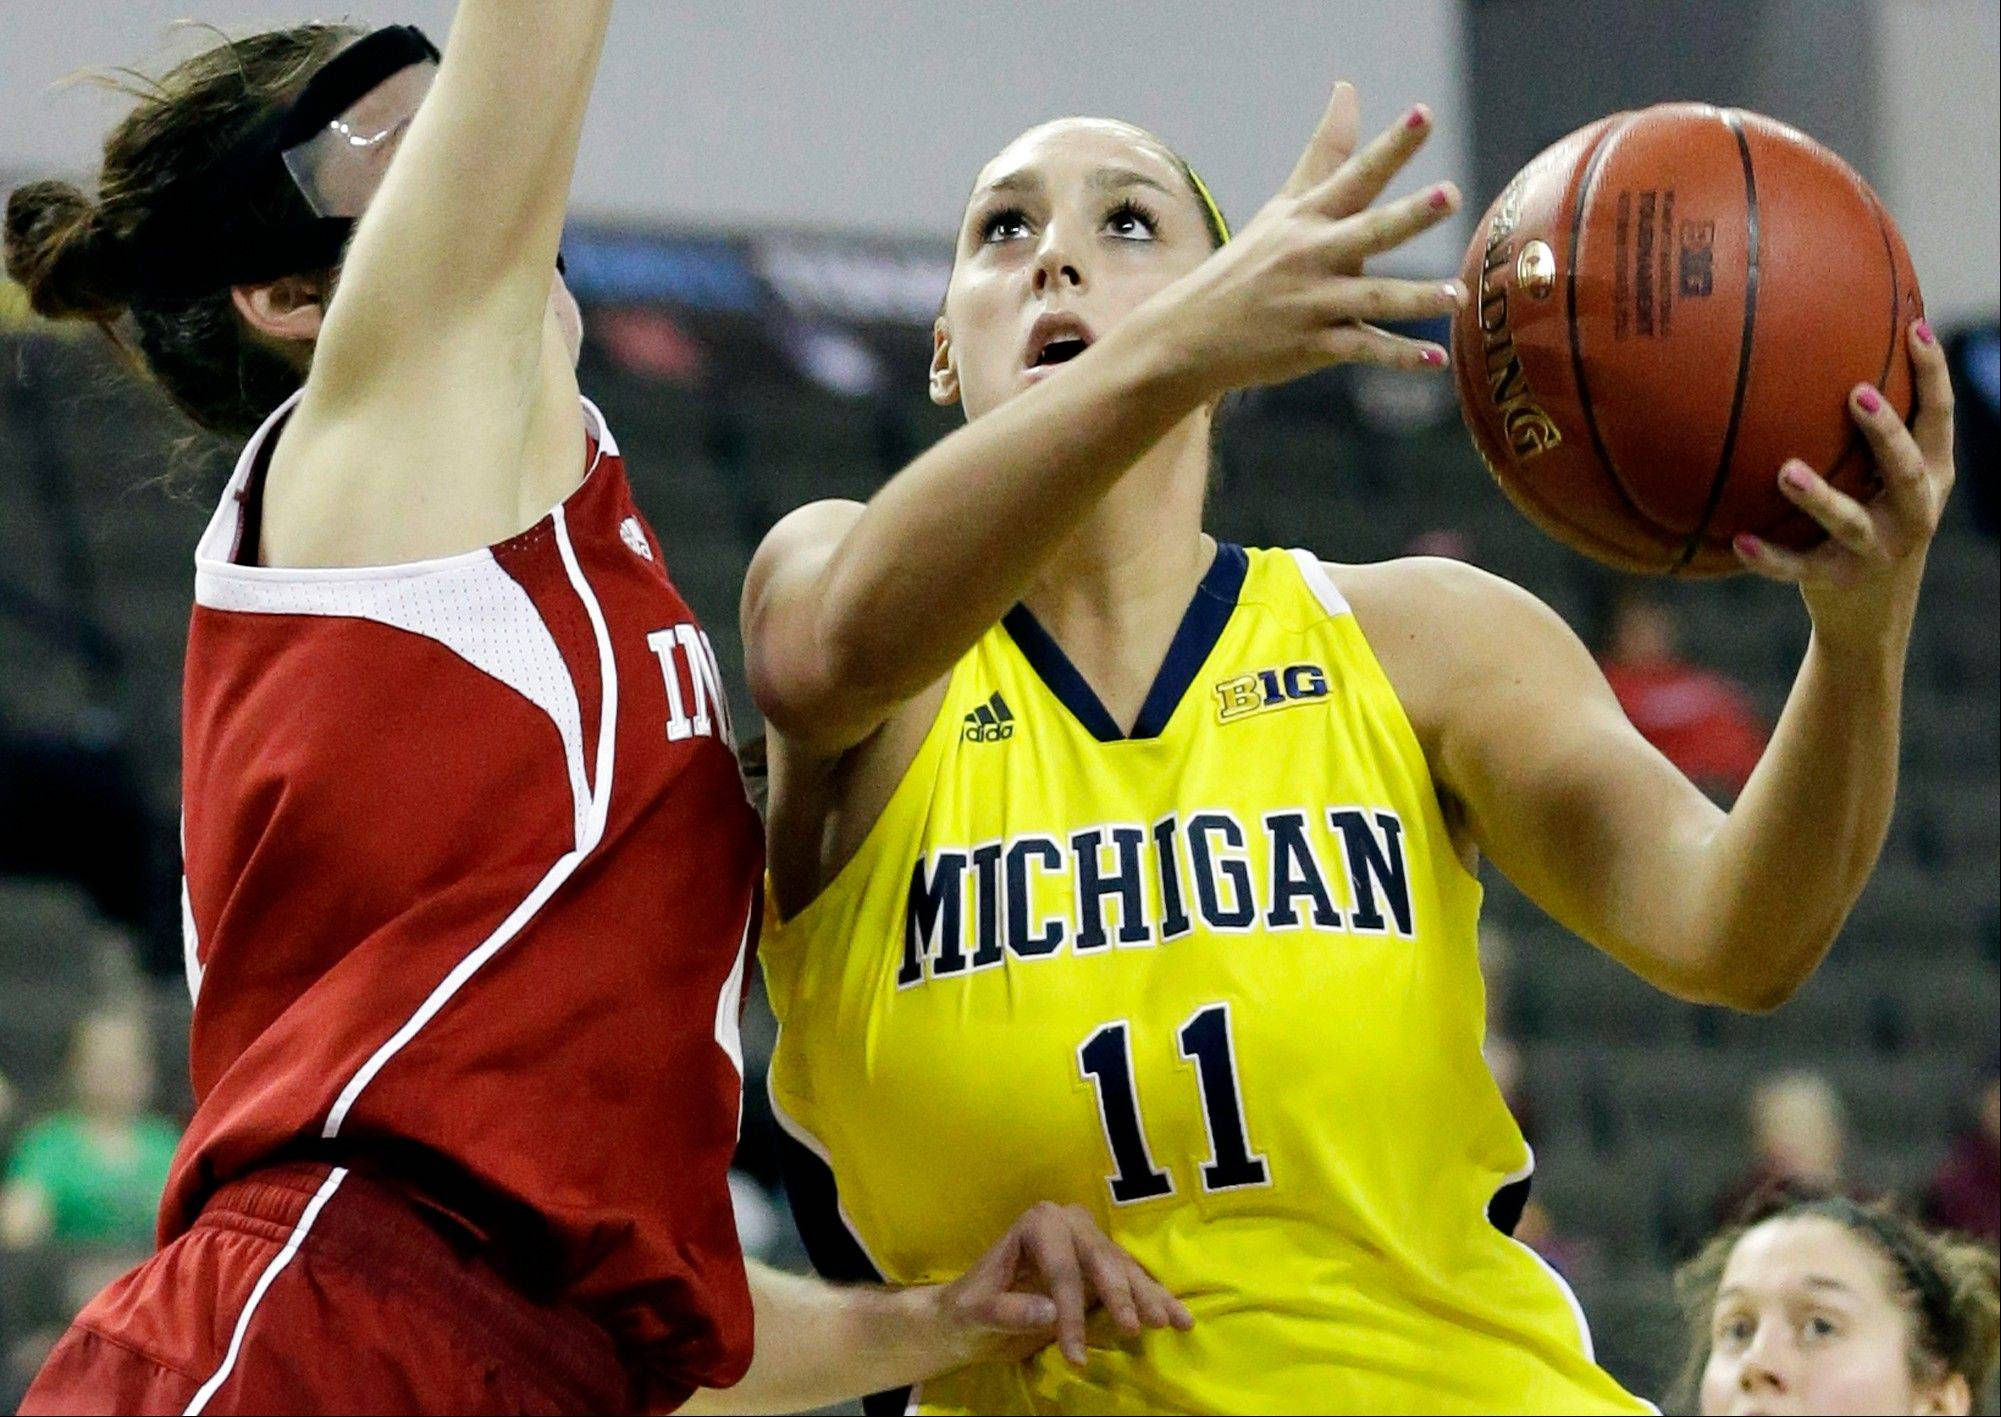 Michigan forward Sam Arnold, right, drives to the basket against Indiana forward Andrea Newbauer during the second half of an NCAA college basketball game in the Big Ten women's tournament in Hoffman Estates Thursday.